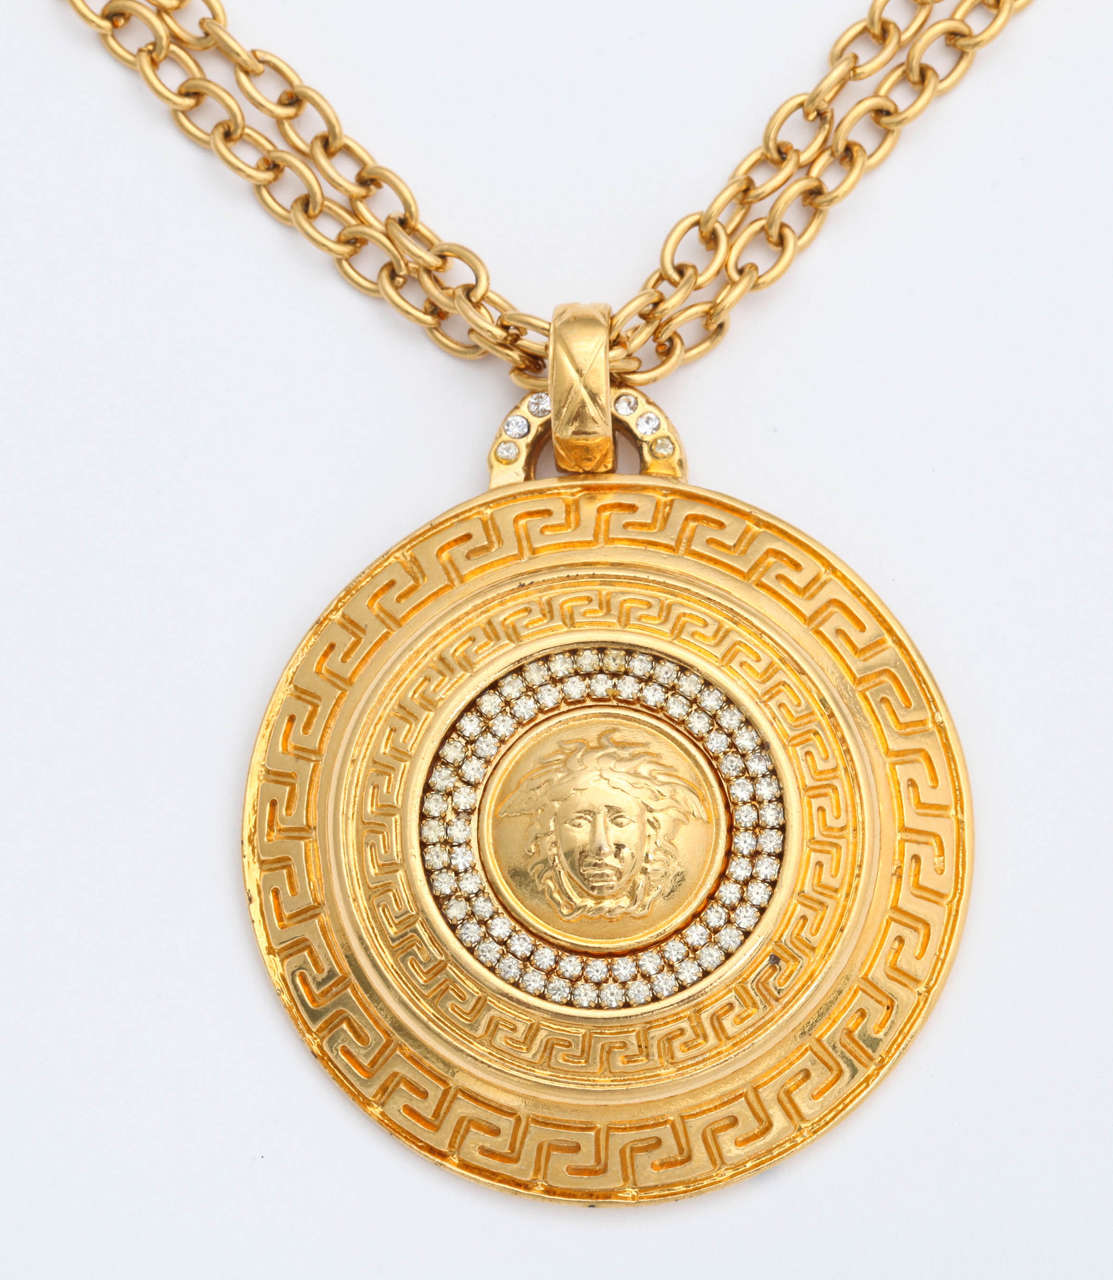 shop maries medal medallion more gift cards vermeil medals books saintesarah saintes large mary magdalene oils gold